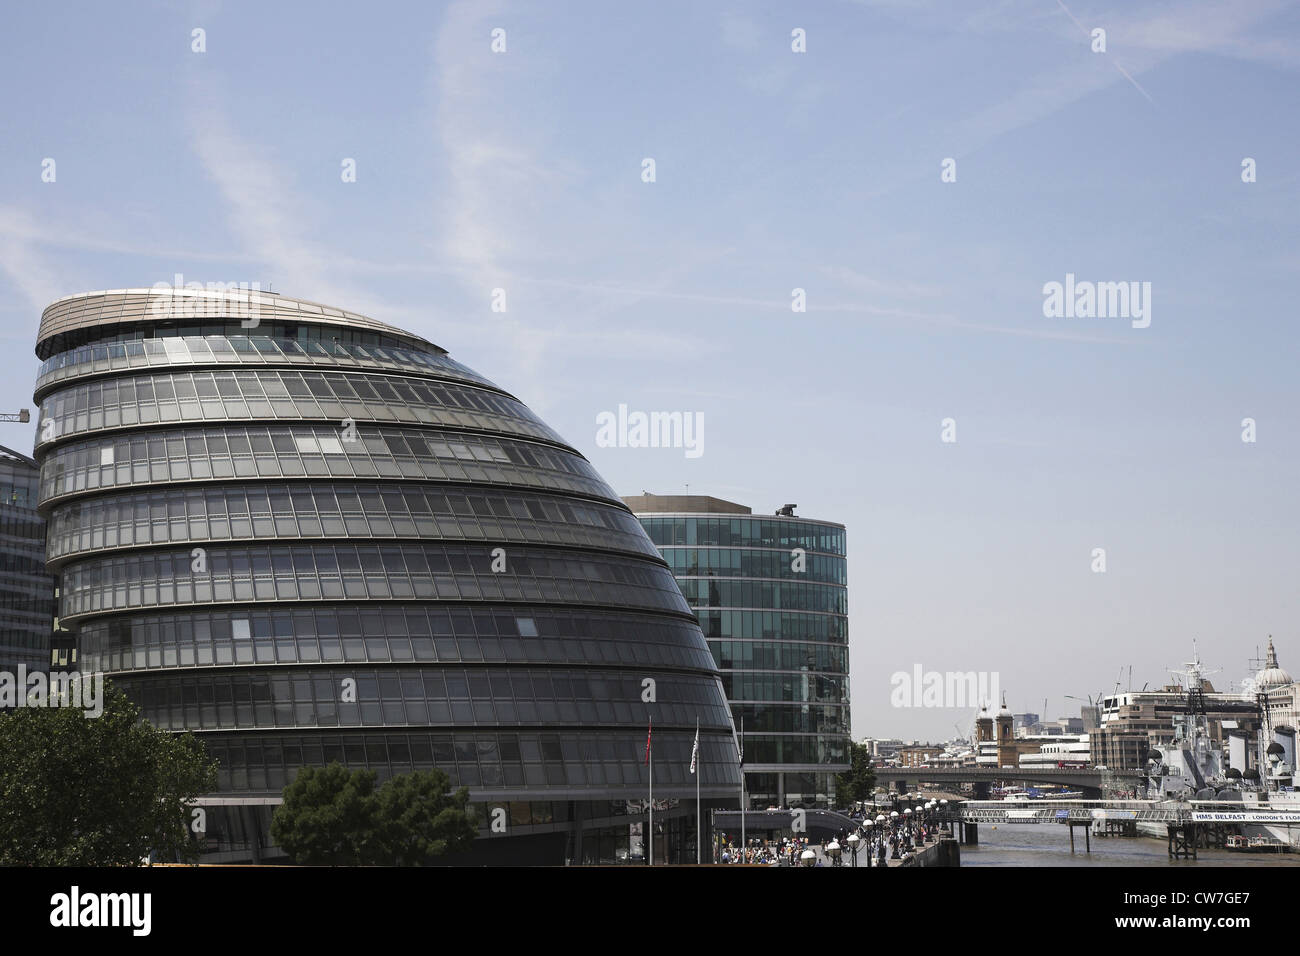 London City Hall, headquarters of the Greater London Authority, the Mayor of London and London Assembly, United - Stock Image